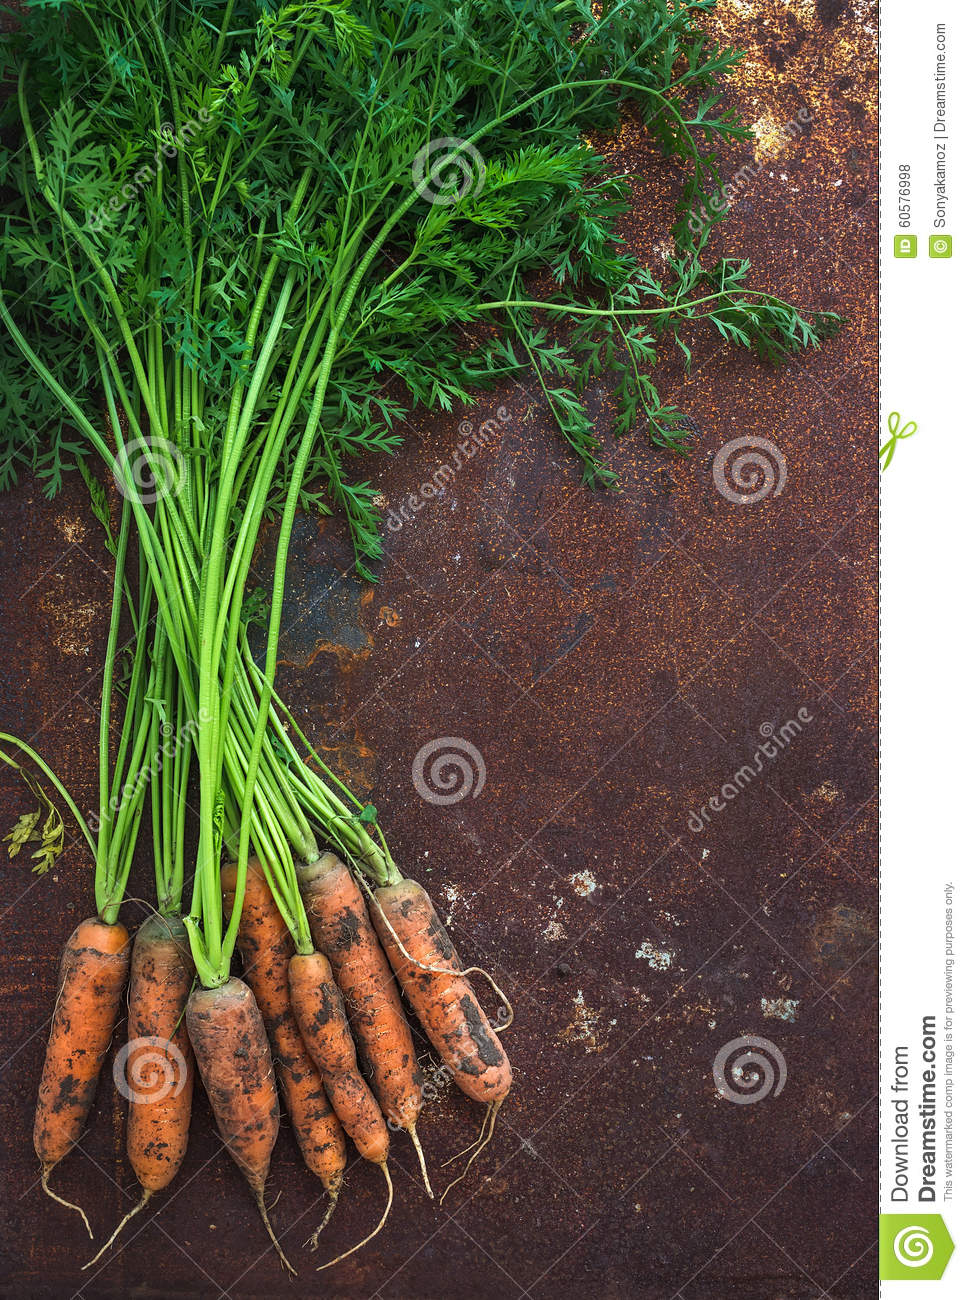 Bunch of fresh garden carrots over grunge rusty